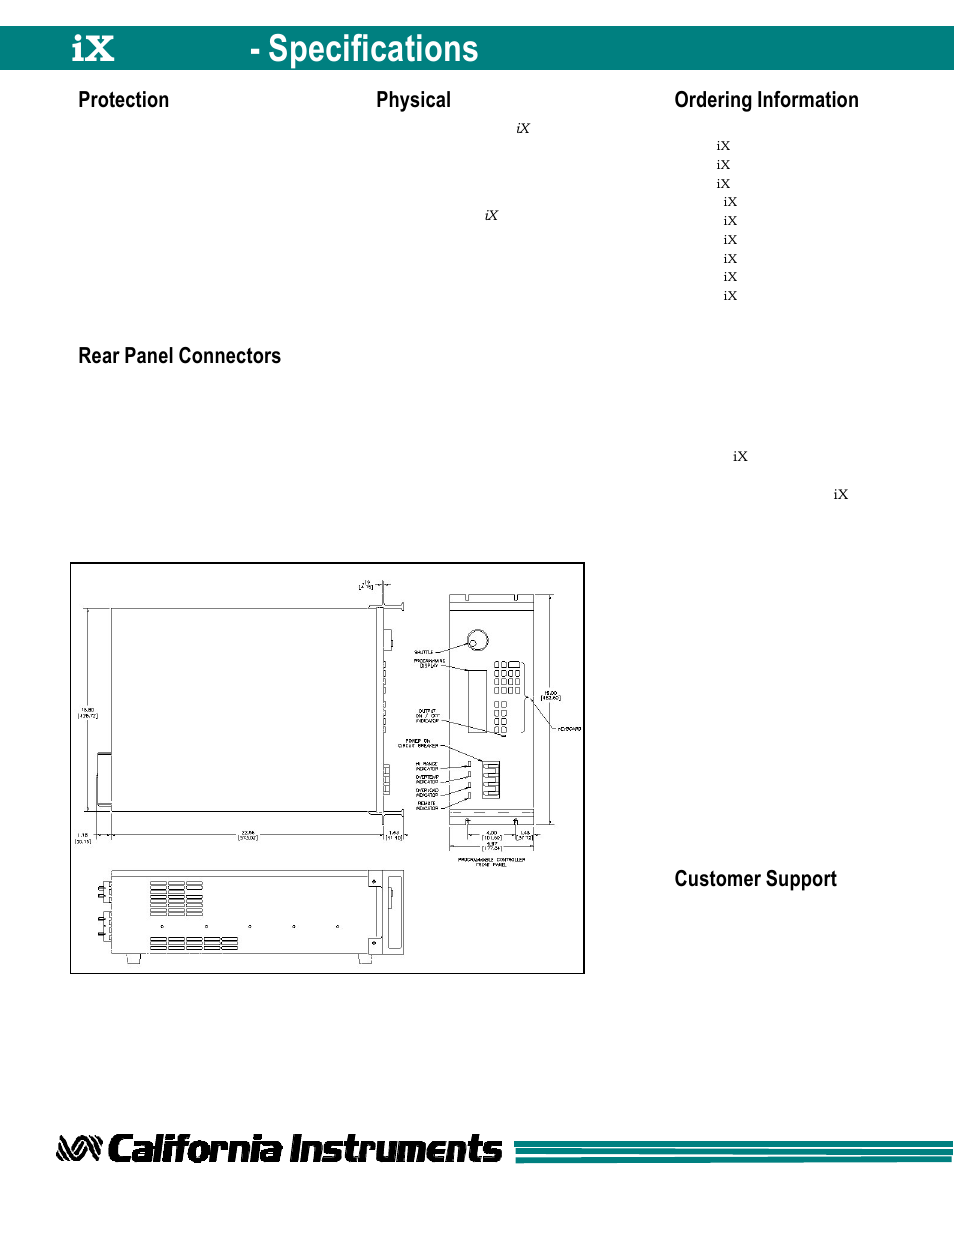 Protection, Rear panel connectors, Physical | Atec California-Instruments-15001iX  User Manual | Page 7 / 7